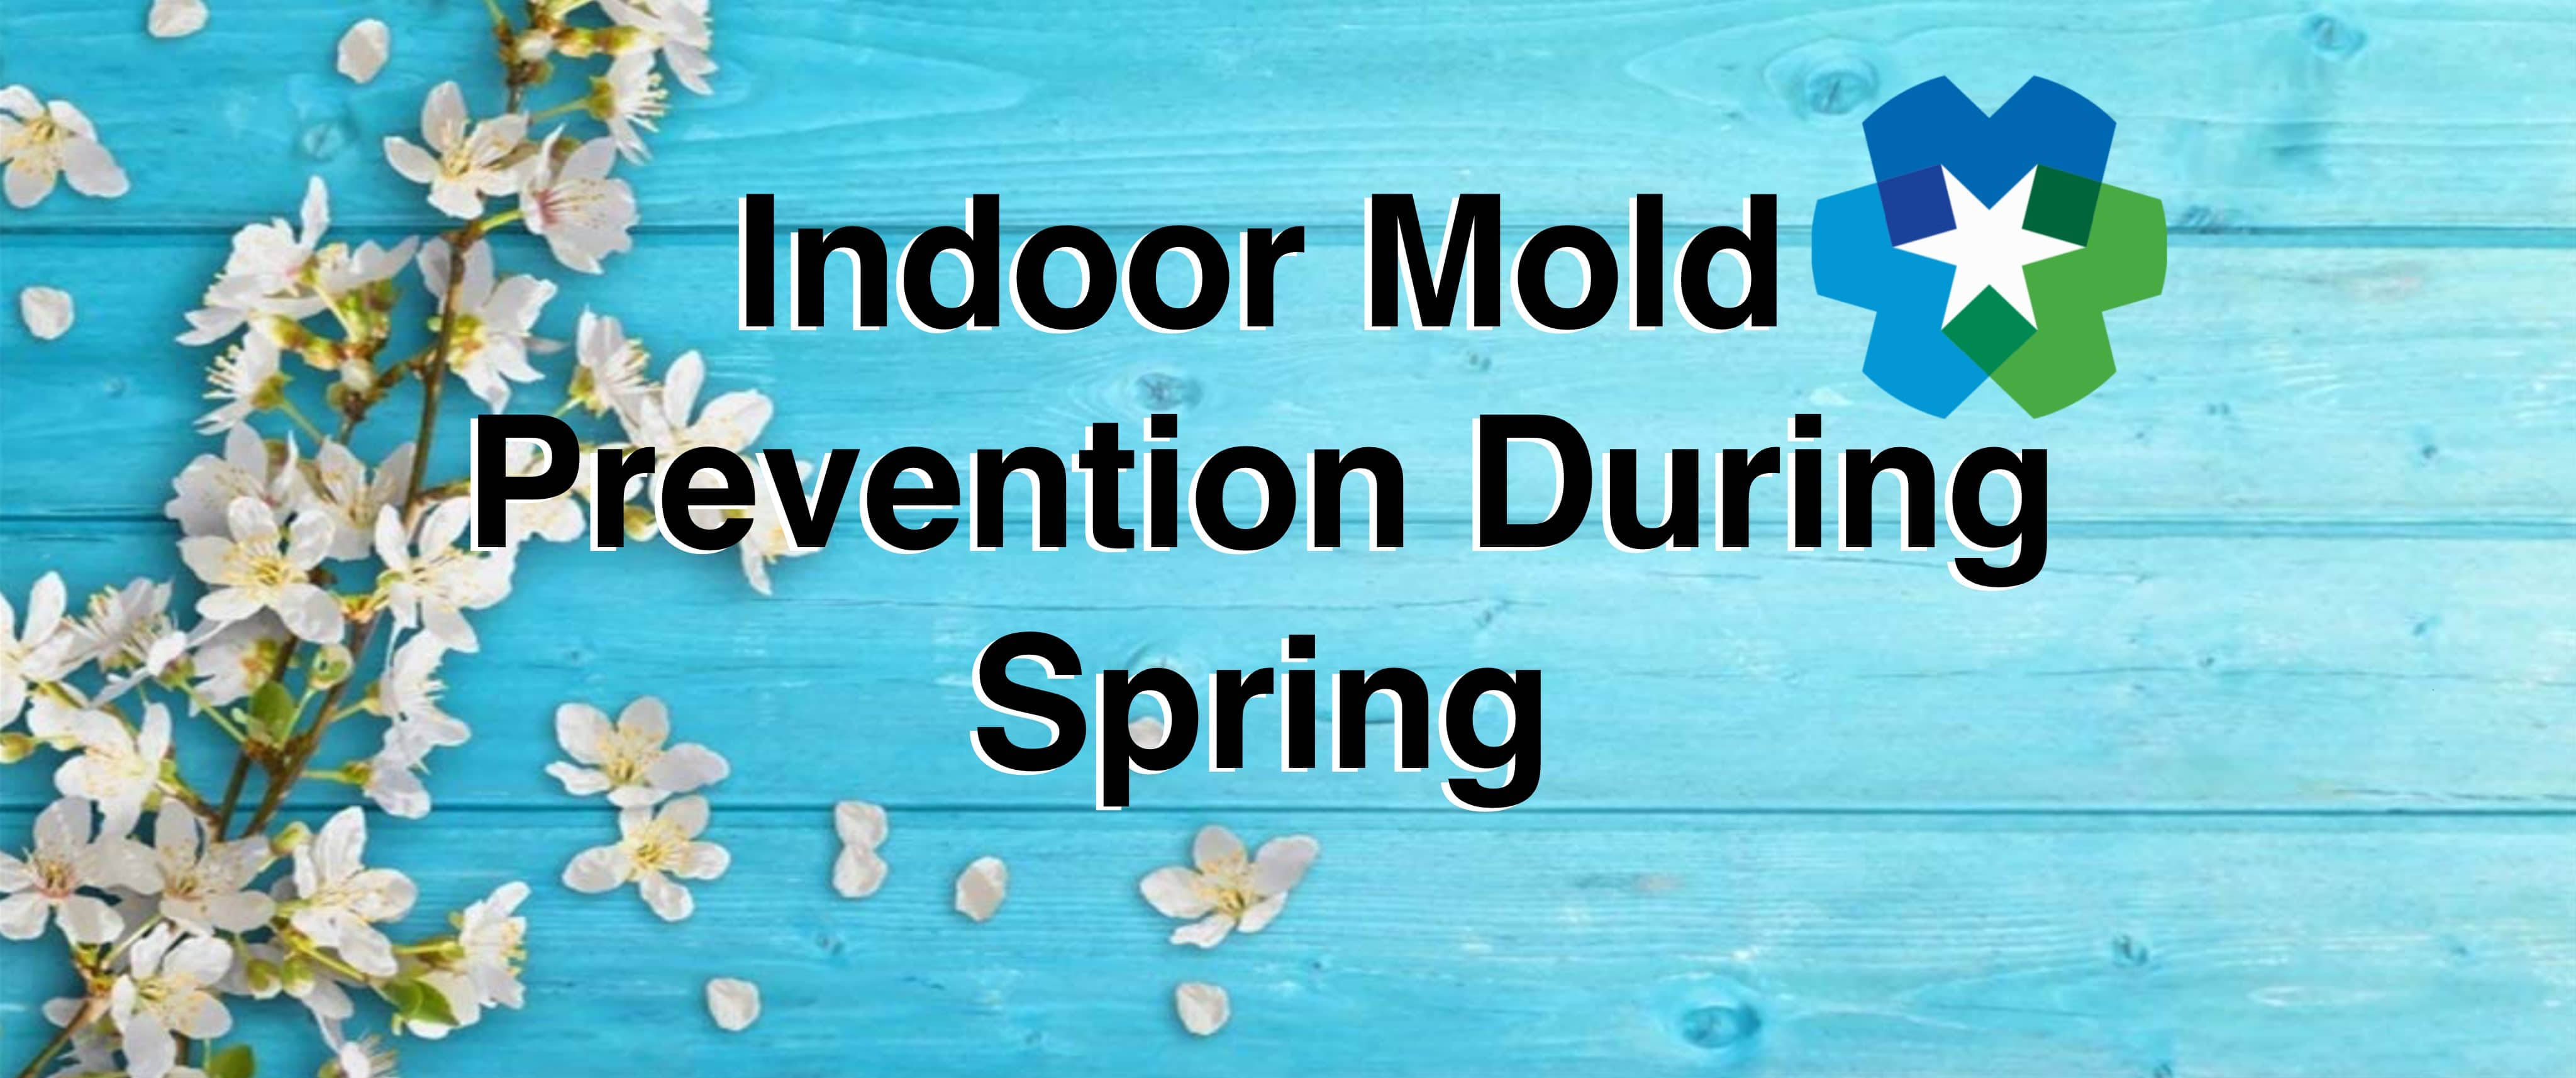 indoor mold prevention during spring south jersey